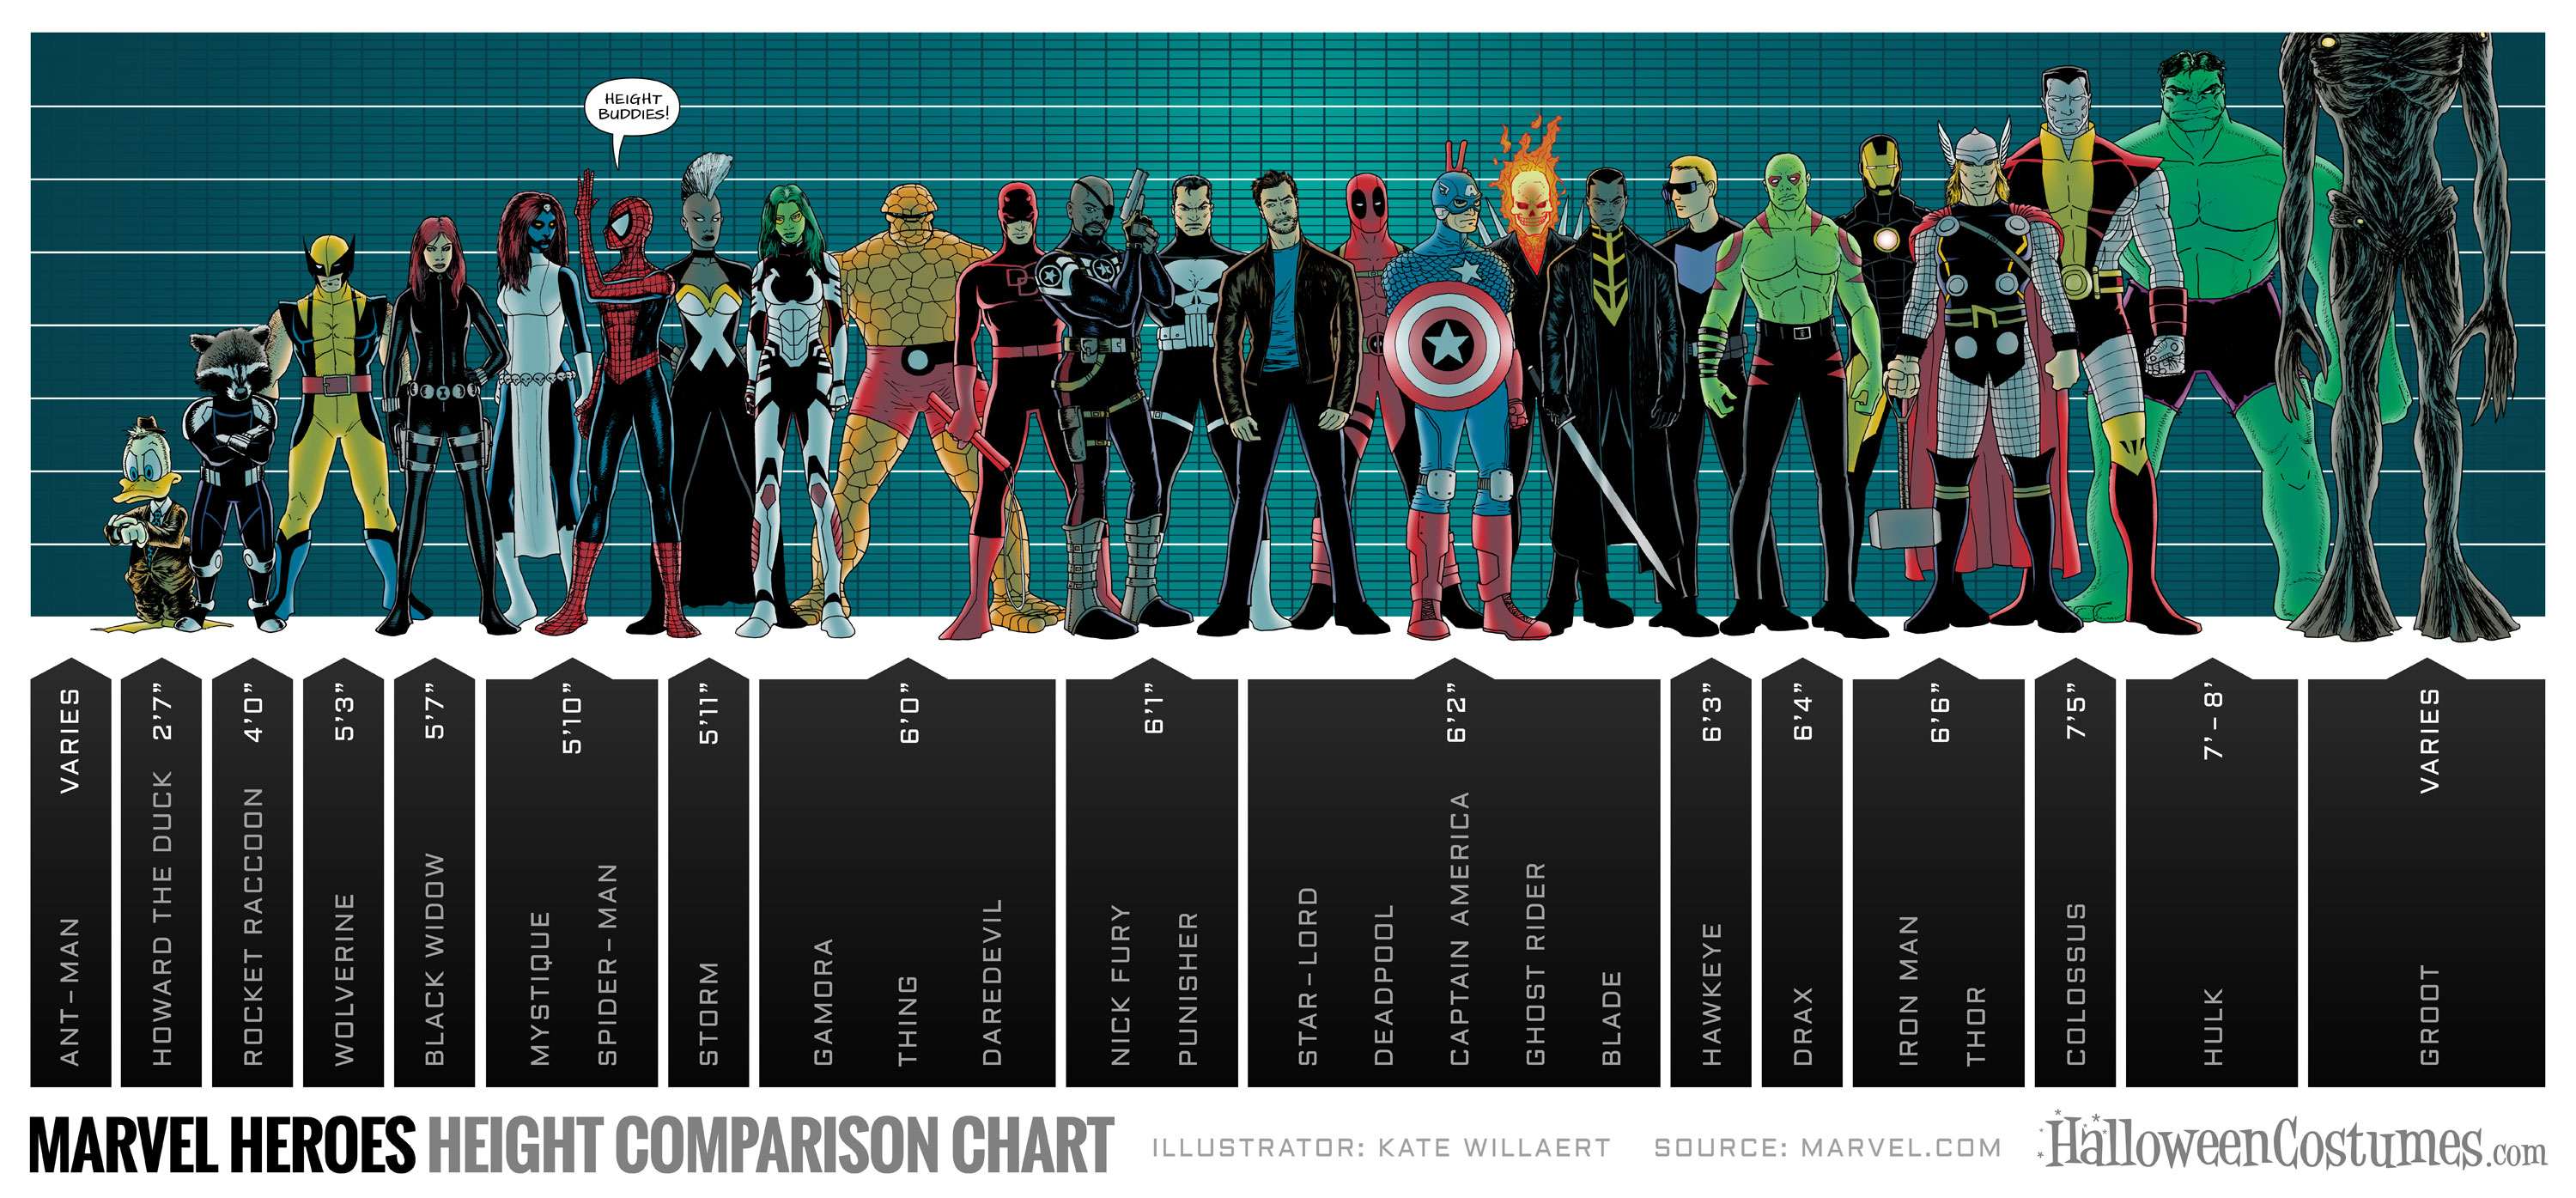 The Marvel Superhero Height Chart